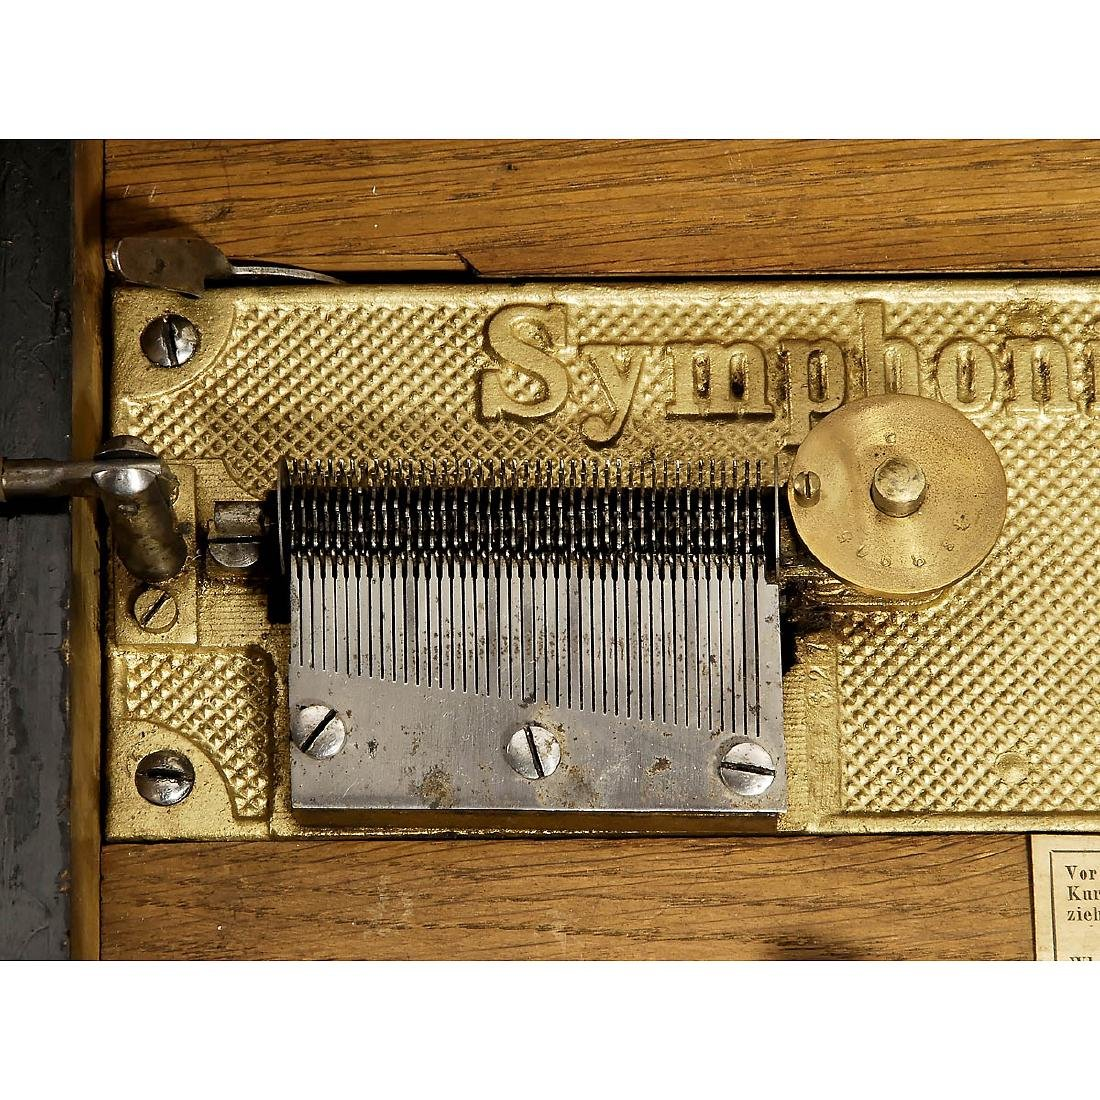 Symphonion No. 10 Disc Musical Box, c. 1900 - 2